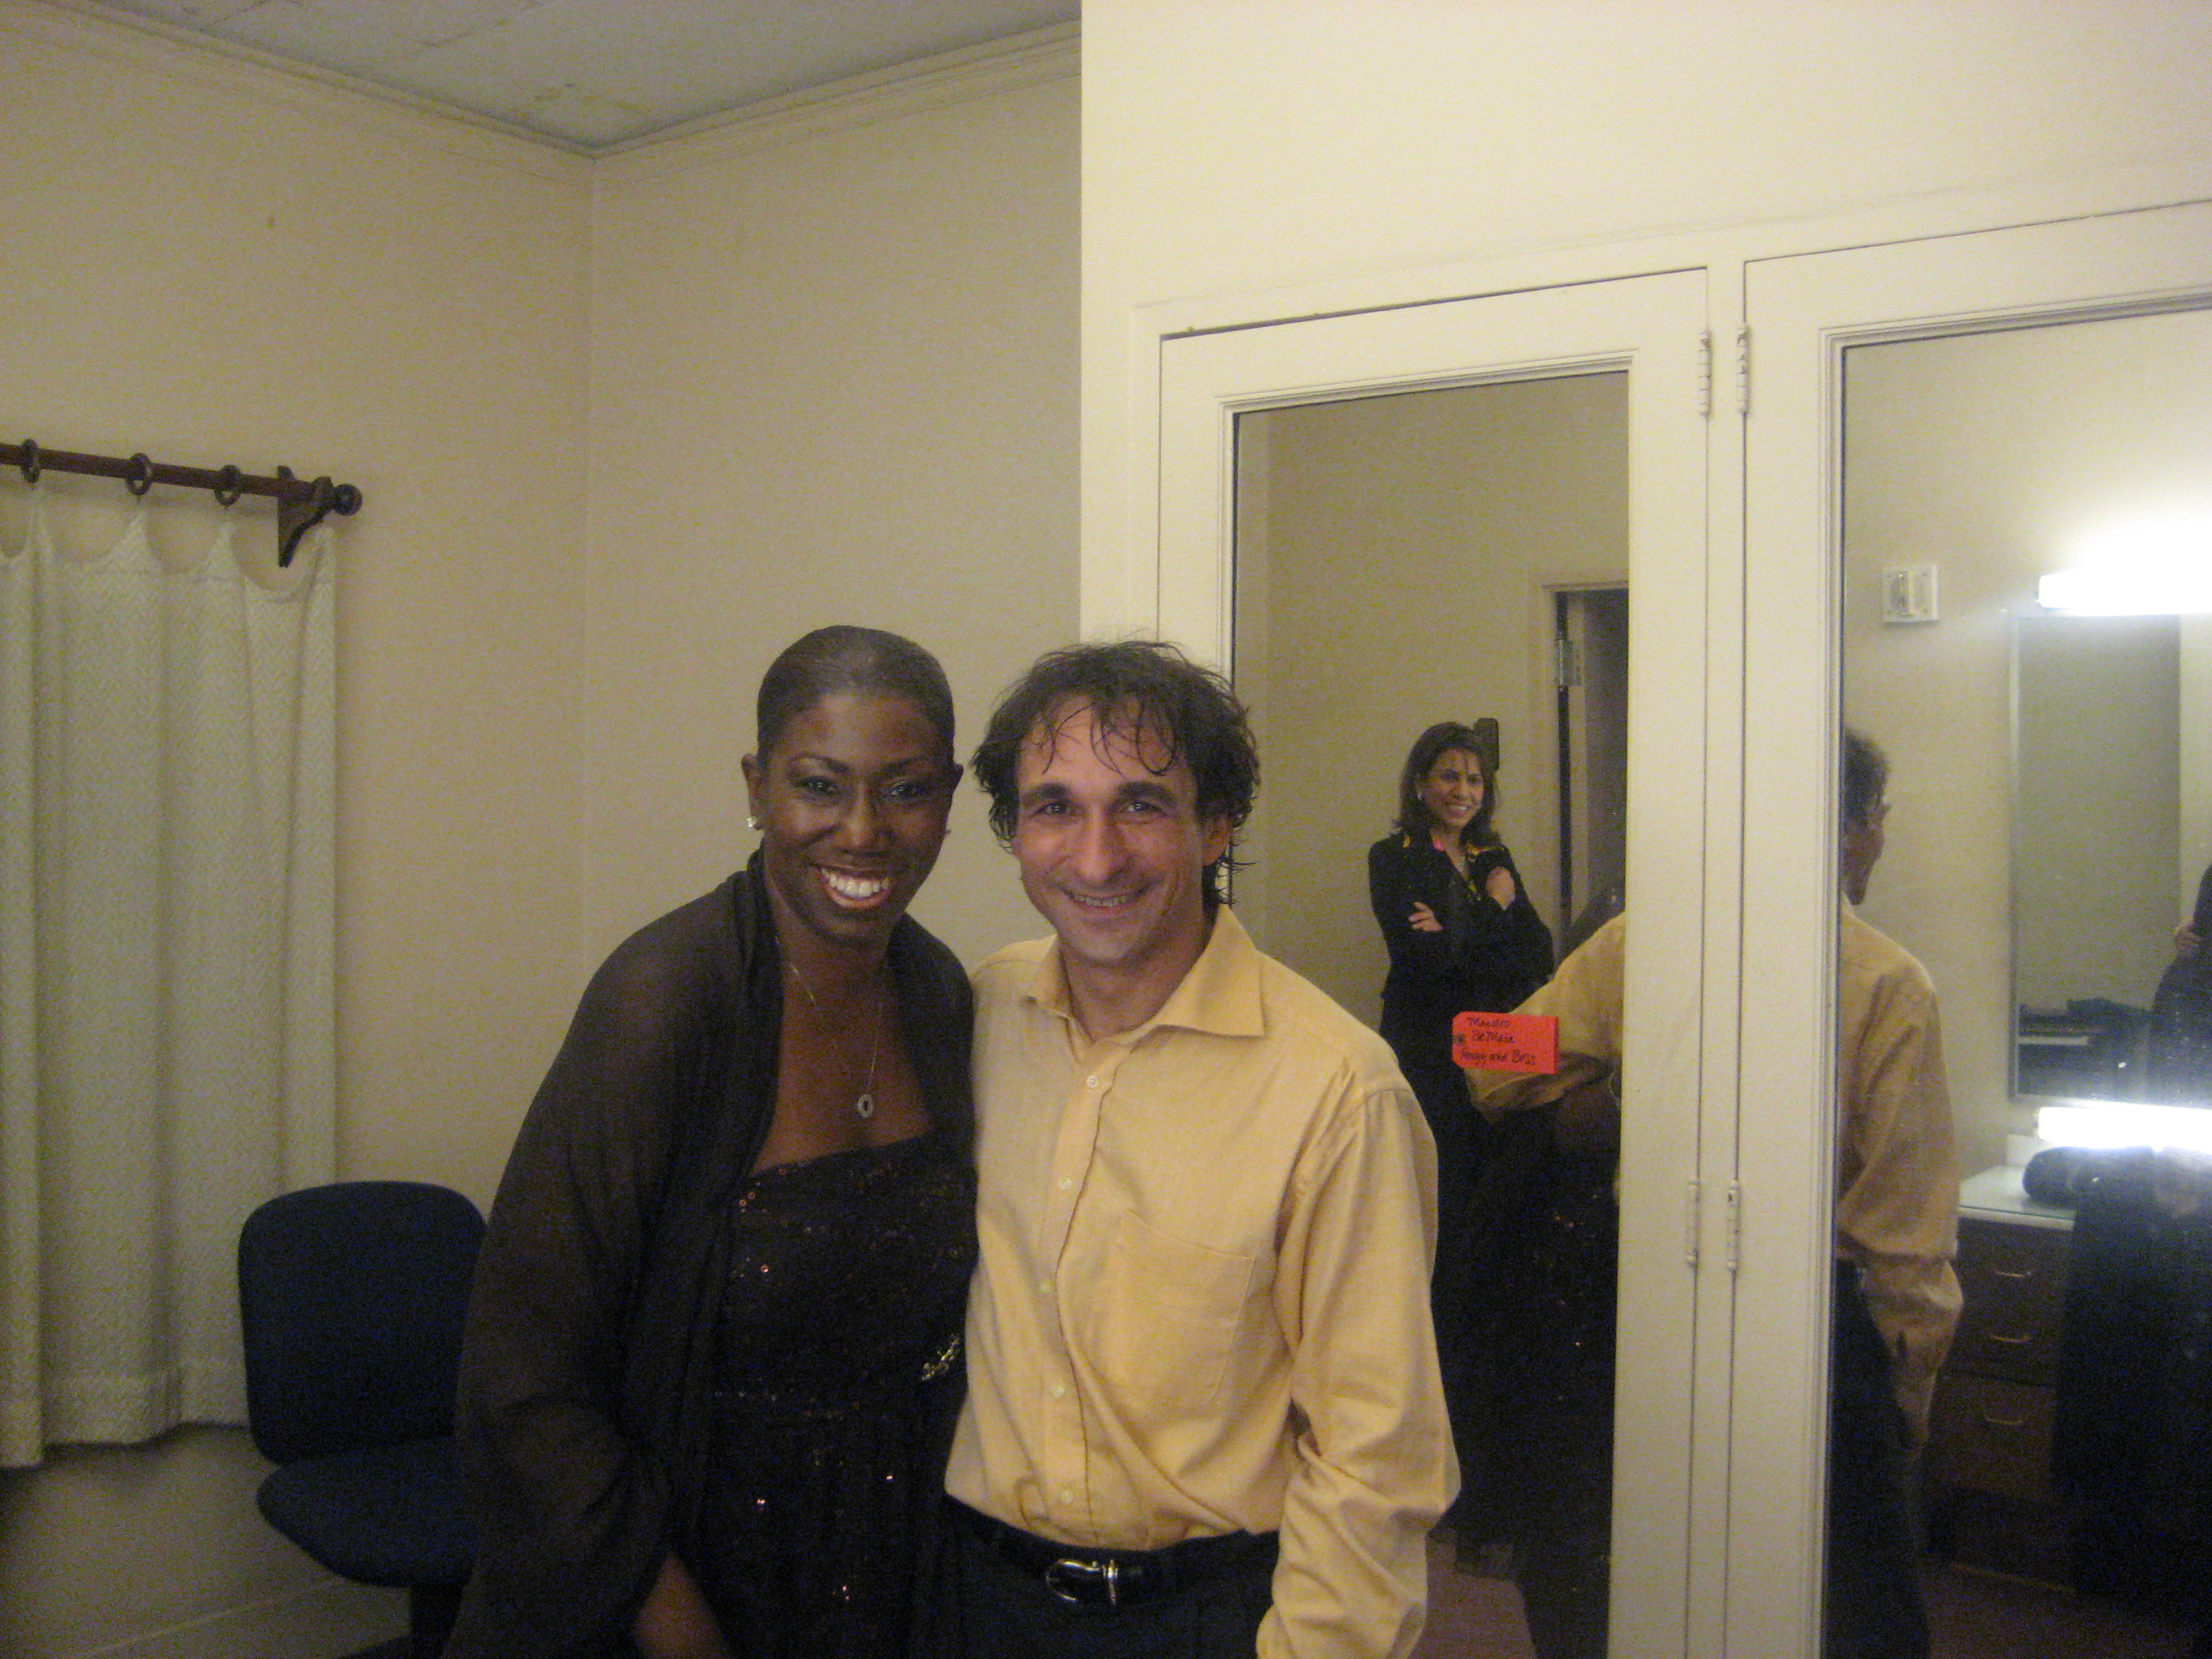 Backstage at SFO with Maestro Marco Armililato